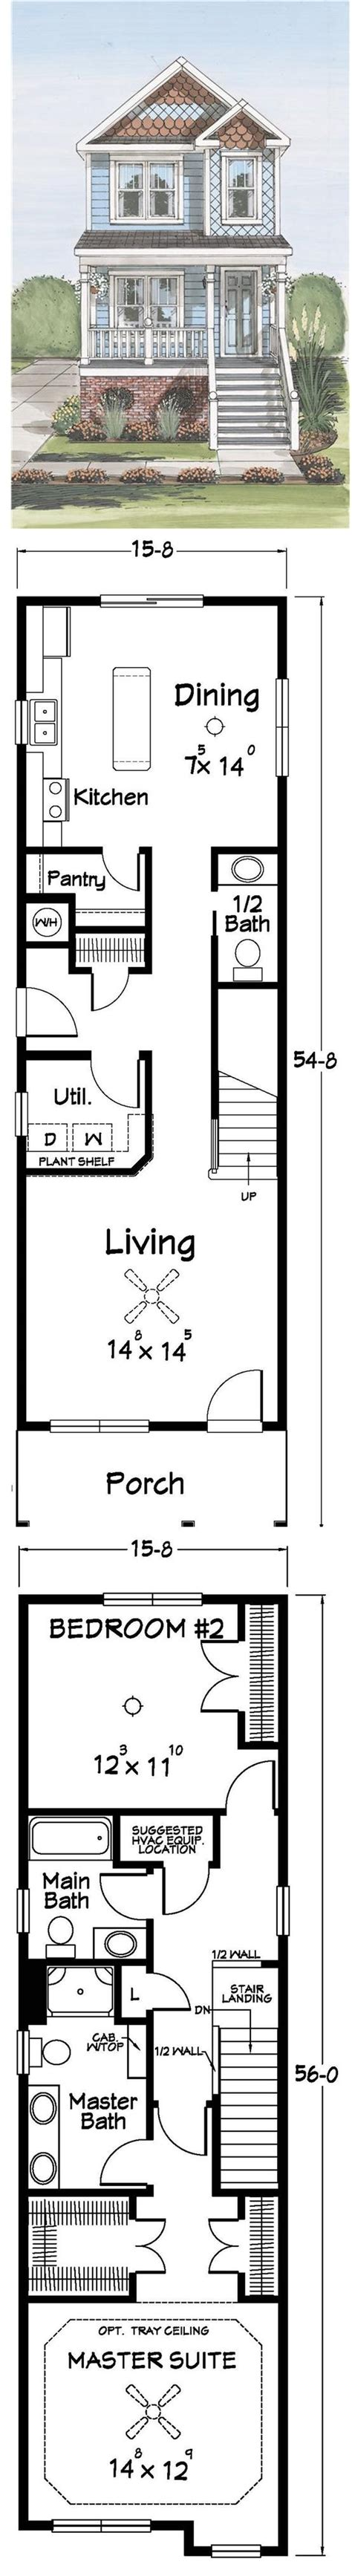 small lot house floor plans narrow house plans woodworking projects plans